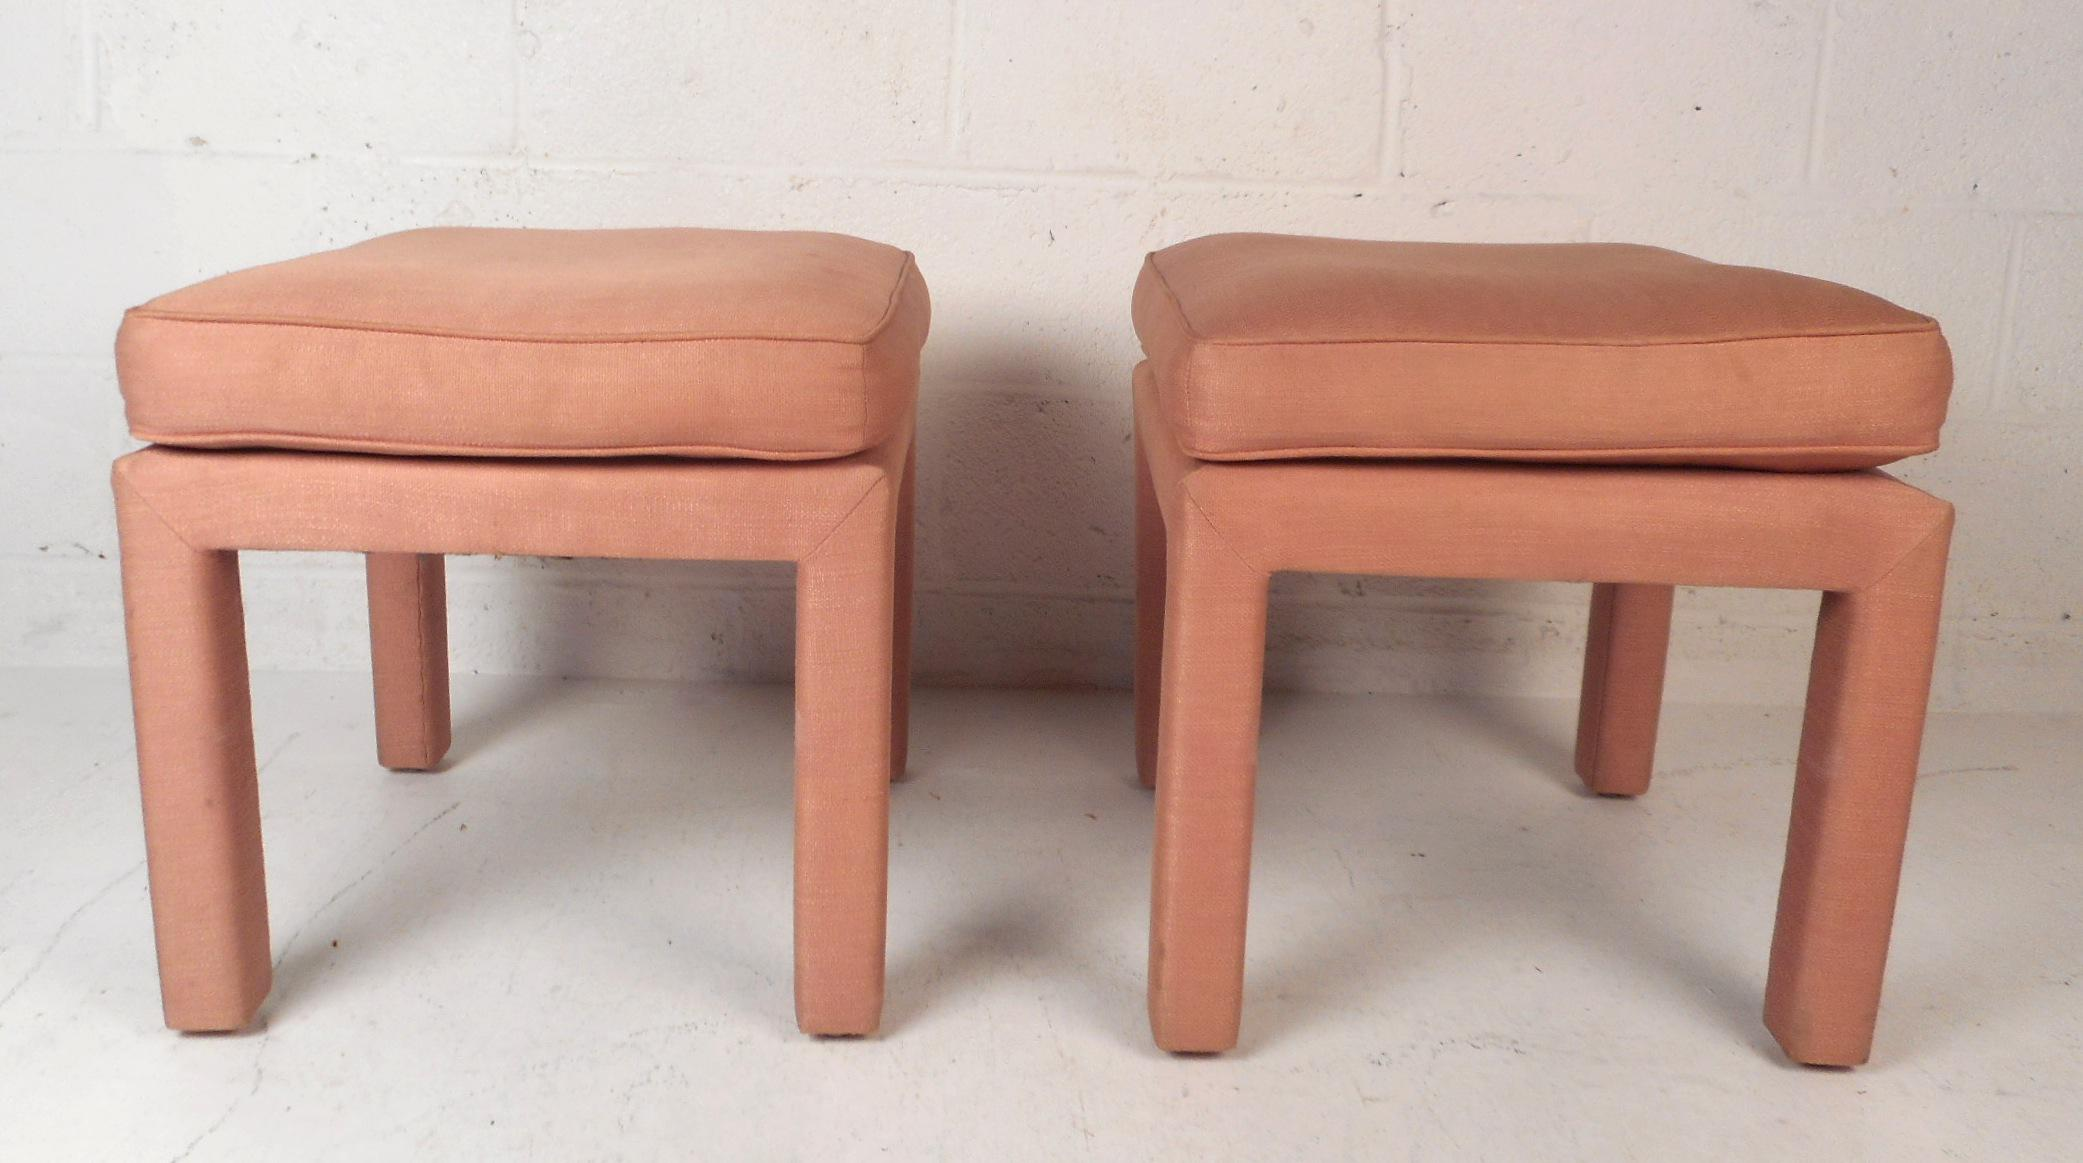 A Stunning Pair Of Vintage Modern Ottomans Covered In Soft Pink Upholstery.  A Stylish And. Mid Century Modern Pair ...